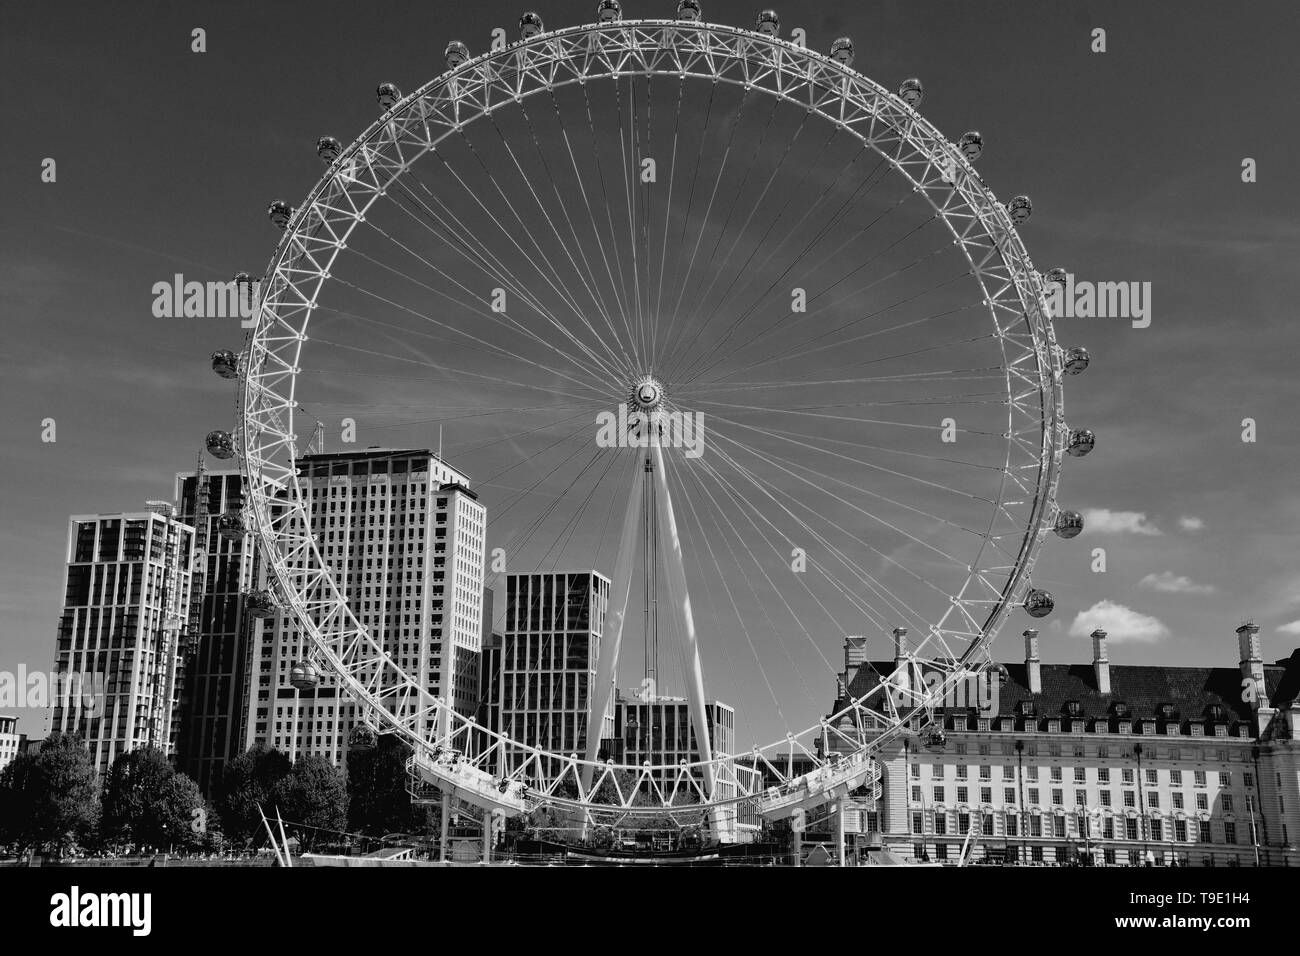 The London Eye on the South Bank of the River Thames at night in London, England - Stock Image